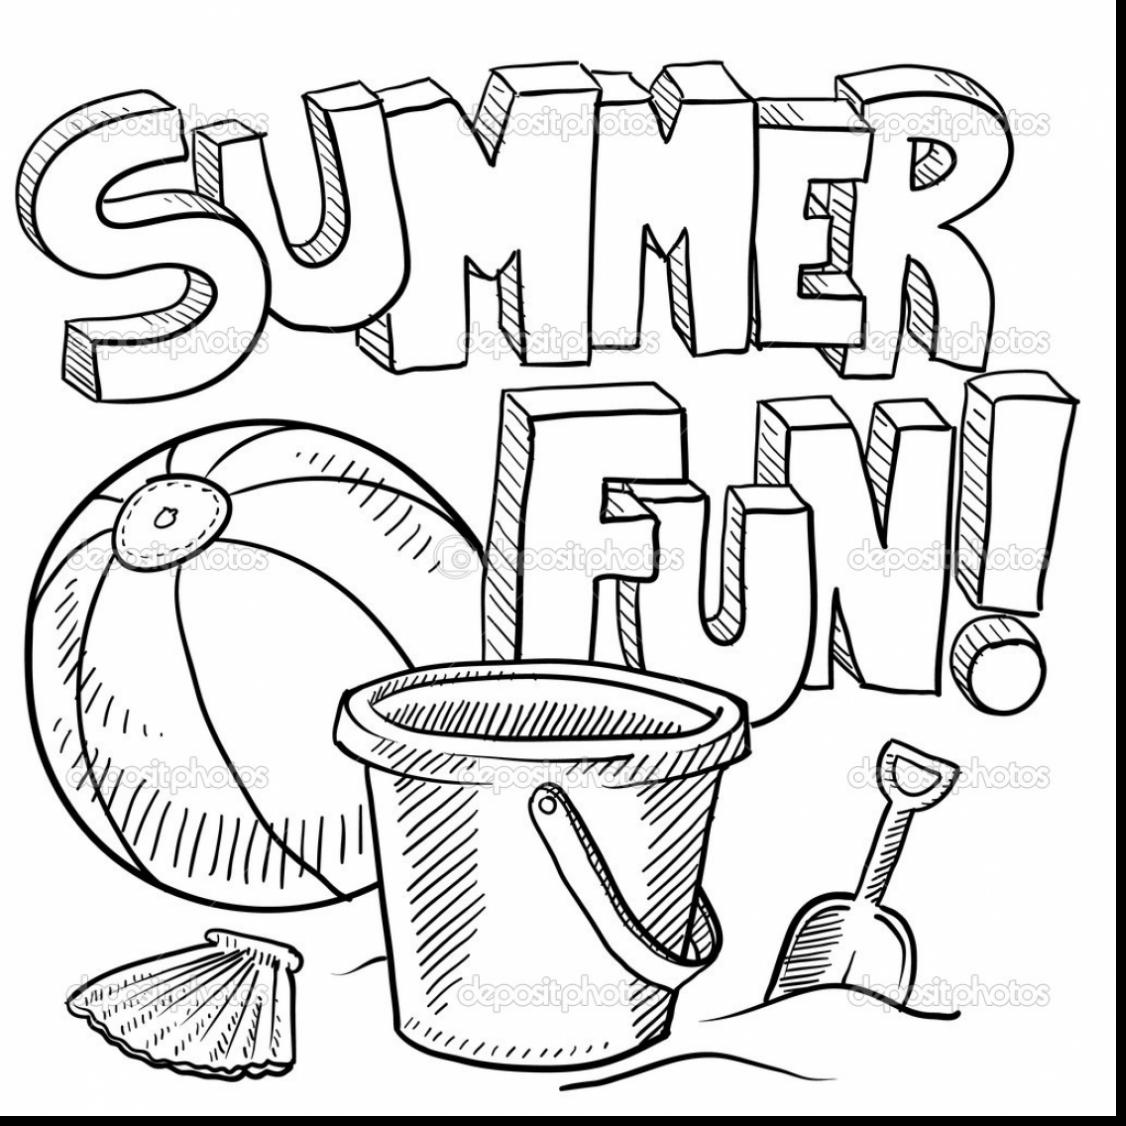 1126x1126 Last Chance Coloring Pages For Year Olds Luxury